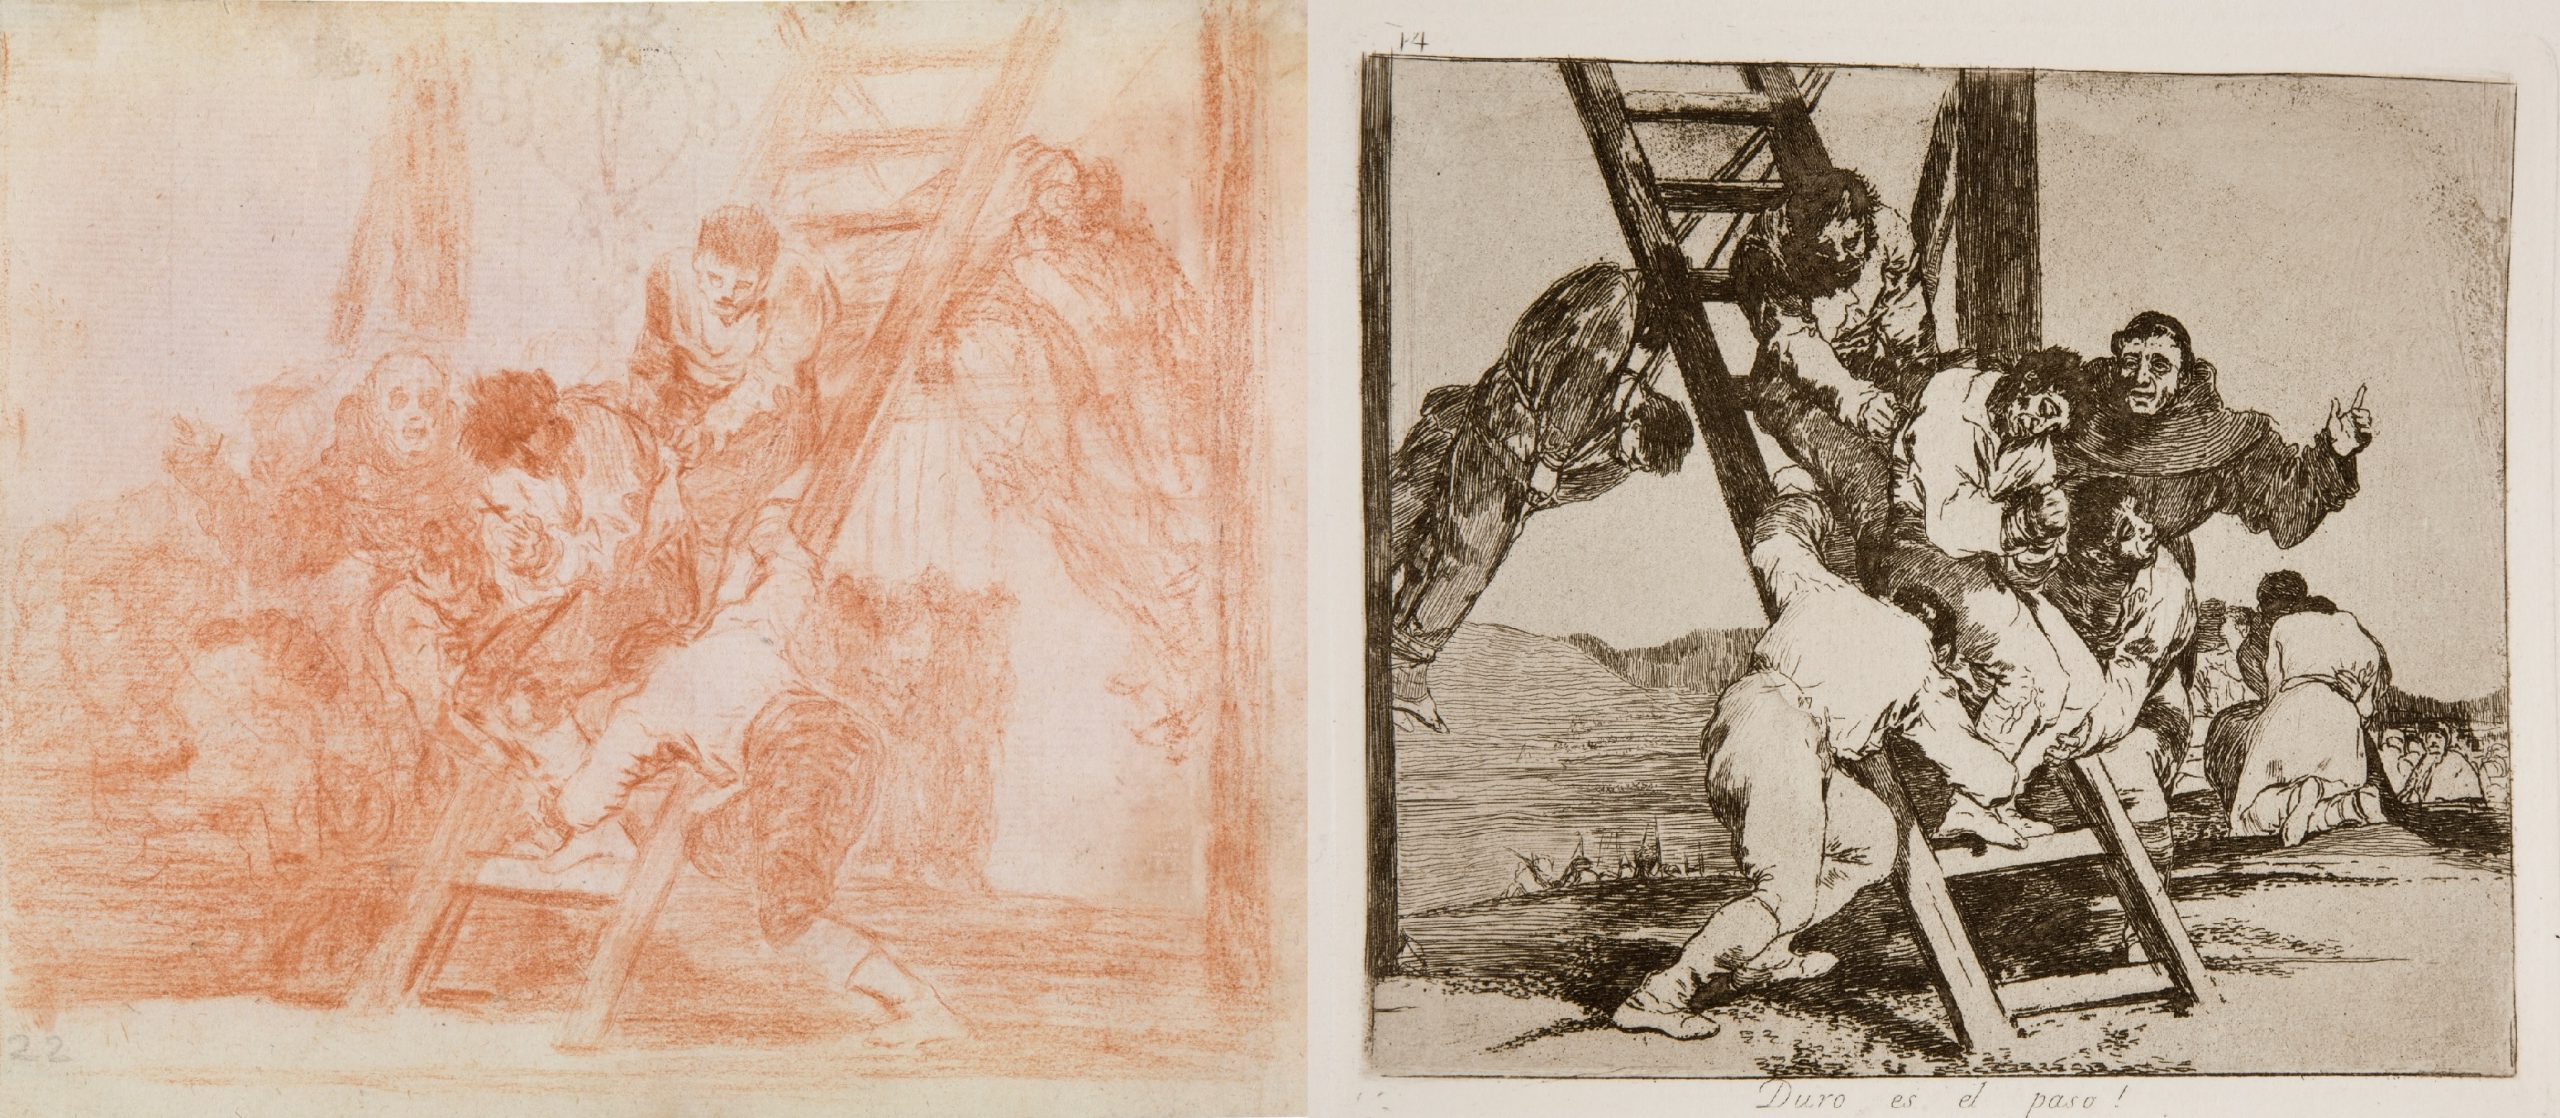 Goya's drawing and print 'OIt's a hard step' from the Disasters of War.